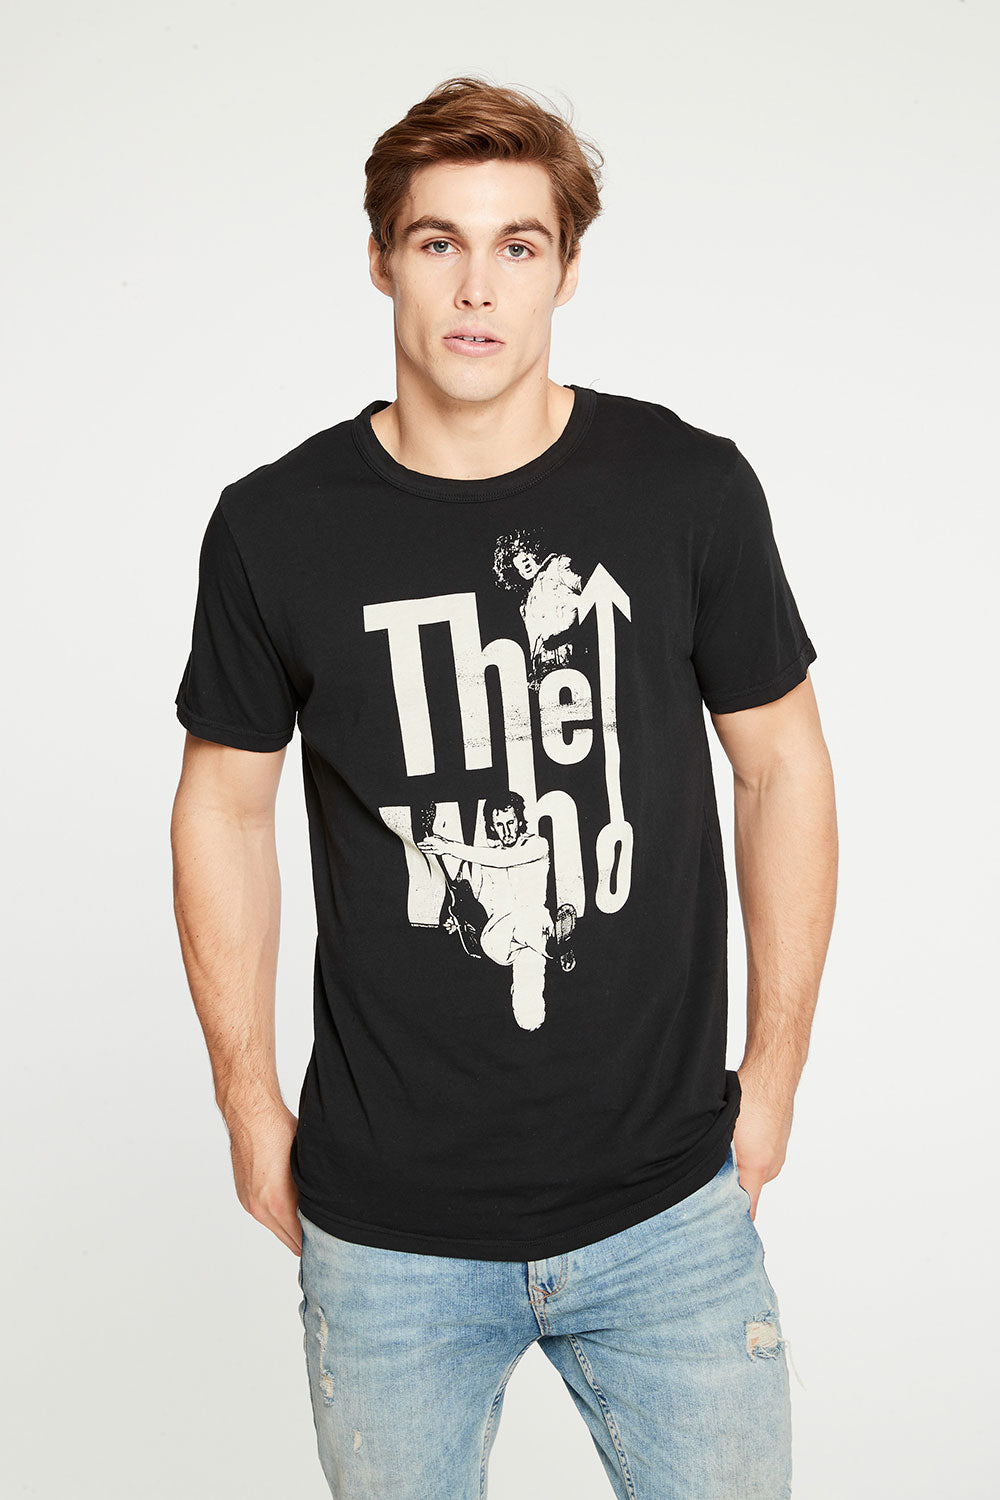 The Who - Classic Logo MENS chaserbrand4.myshopify.com